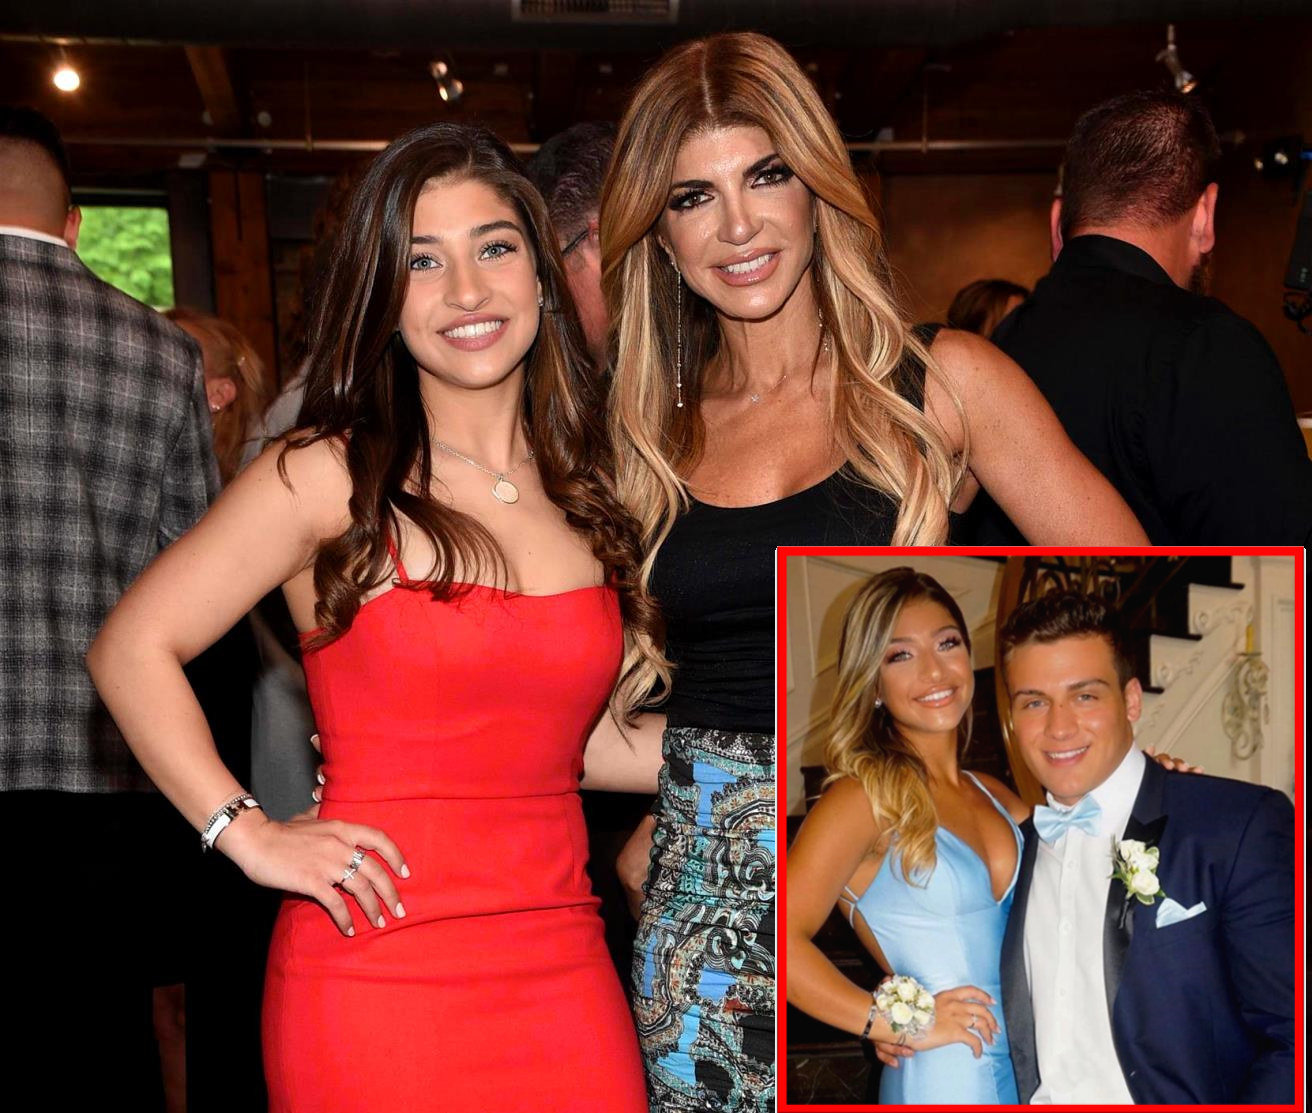 PHOTOS: RHONJ Star Gia Giudice Attends Prom With Frank Catania Jr. as Teresa Throws Prom Soiree! Plus Find Out Which College She's Attending!